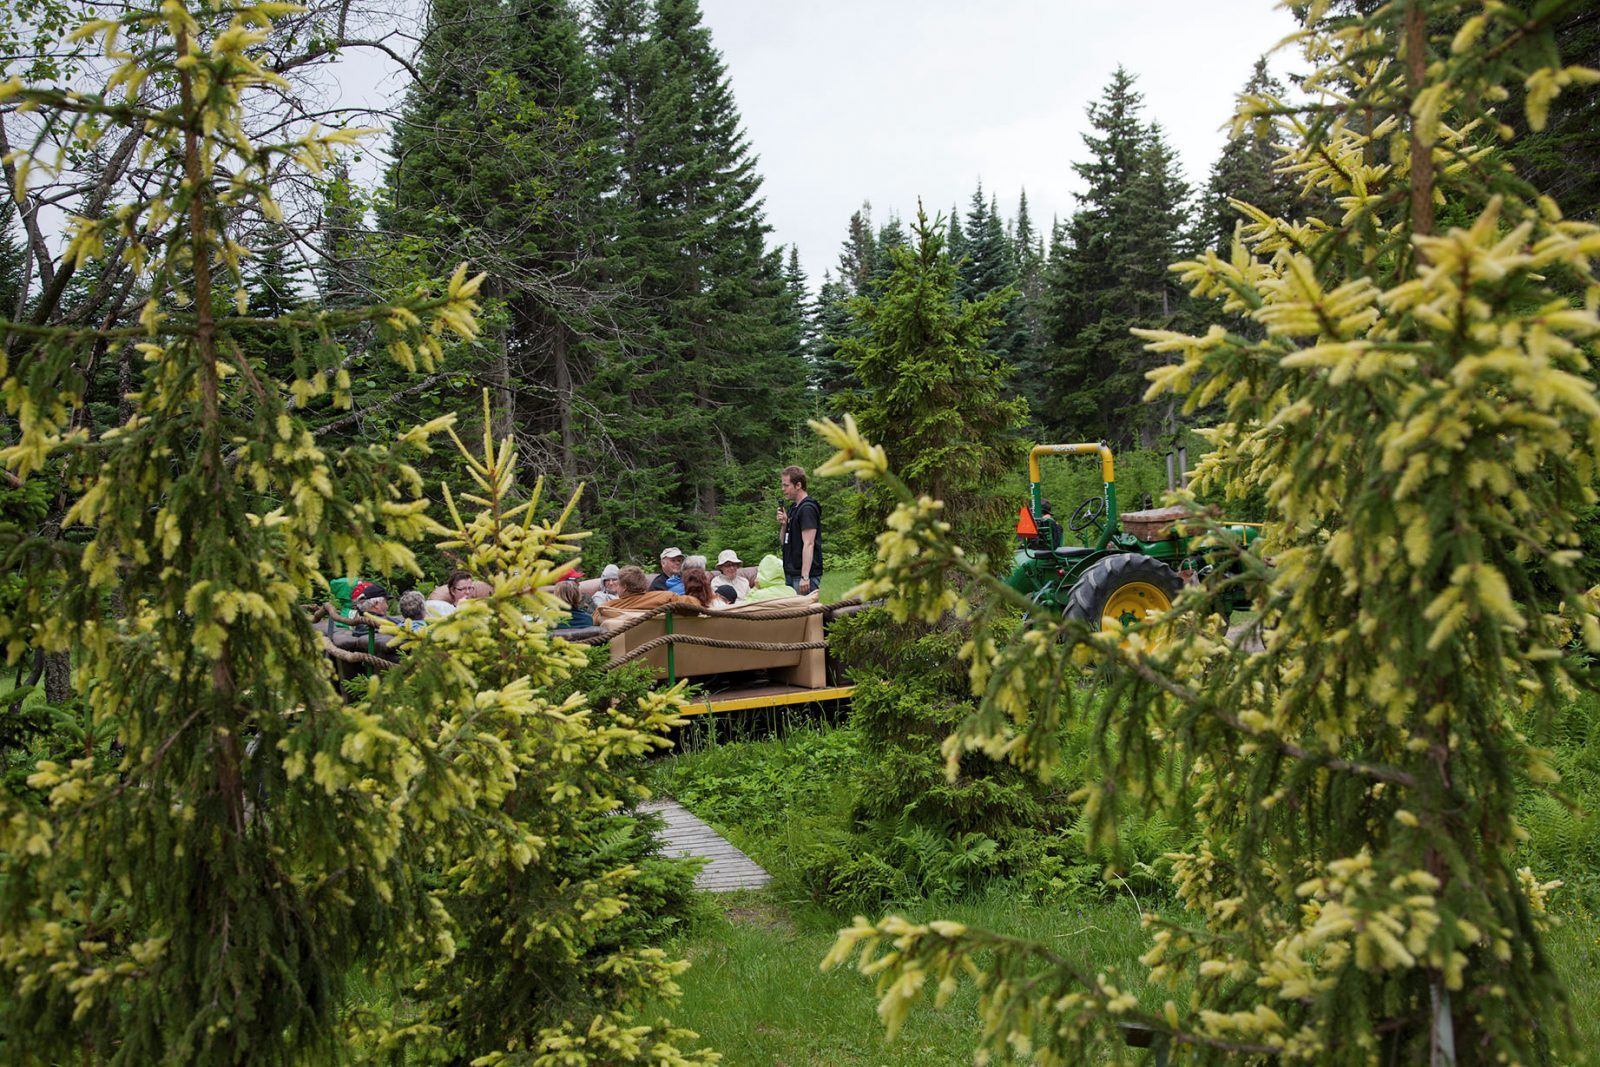 Guided tour to the Arboretum of the Finnish Natural Resources Institute in Punkaharju